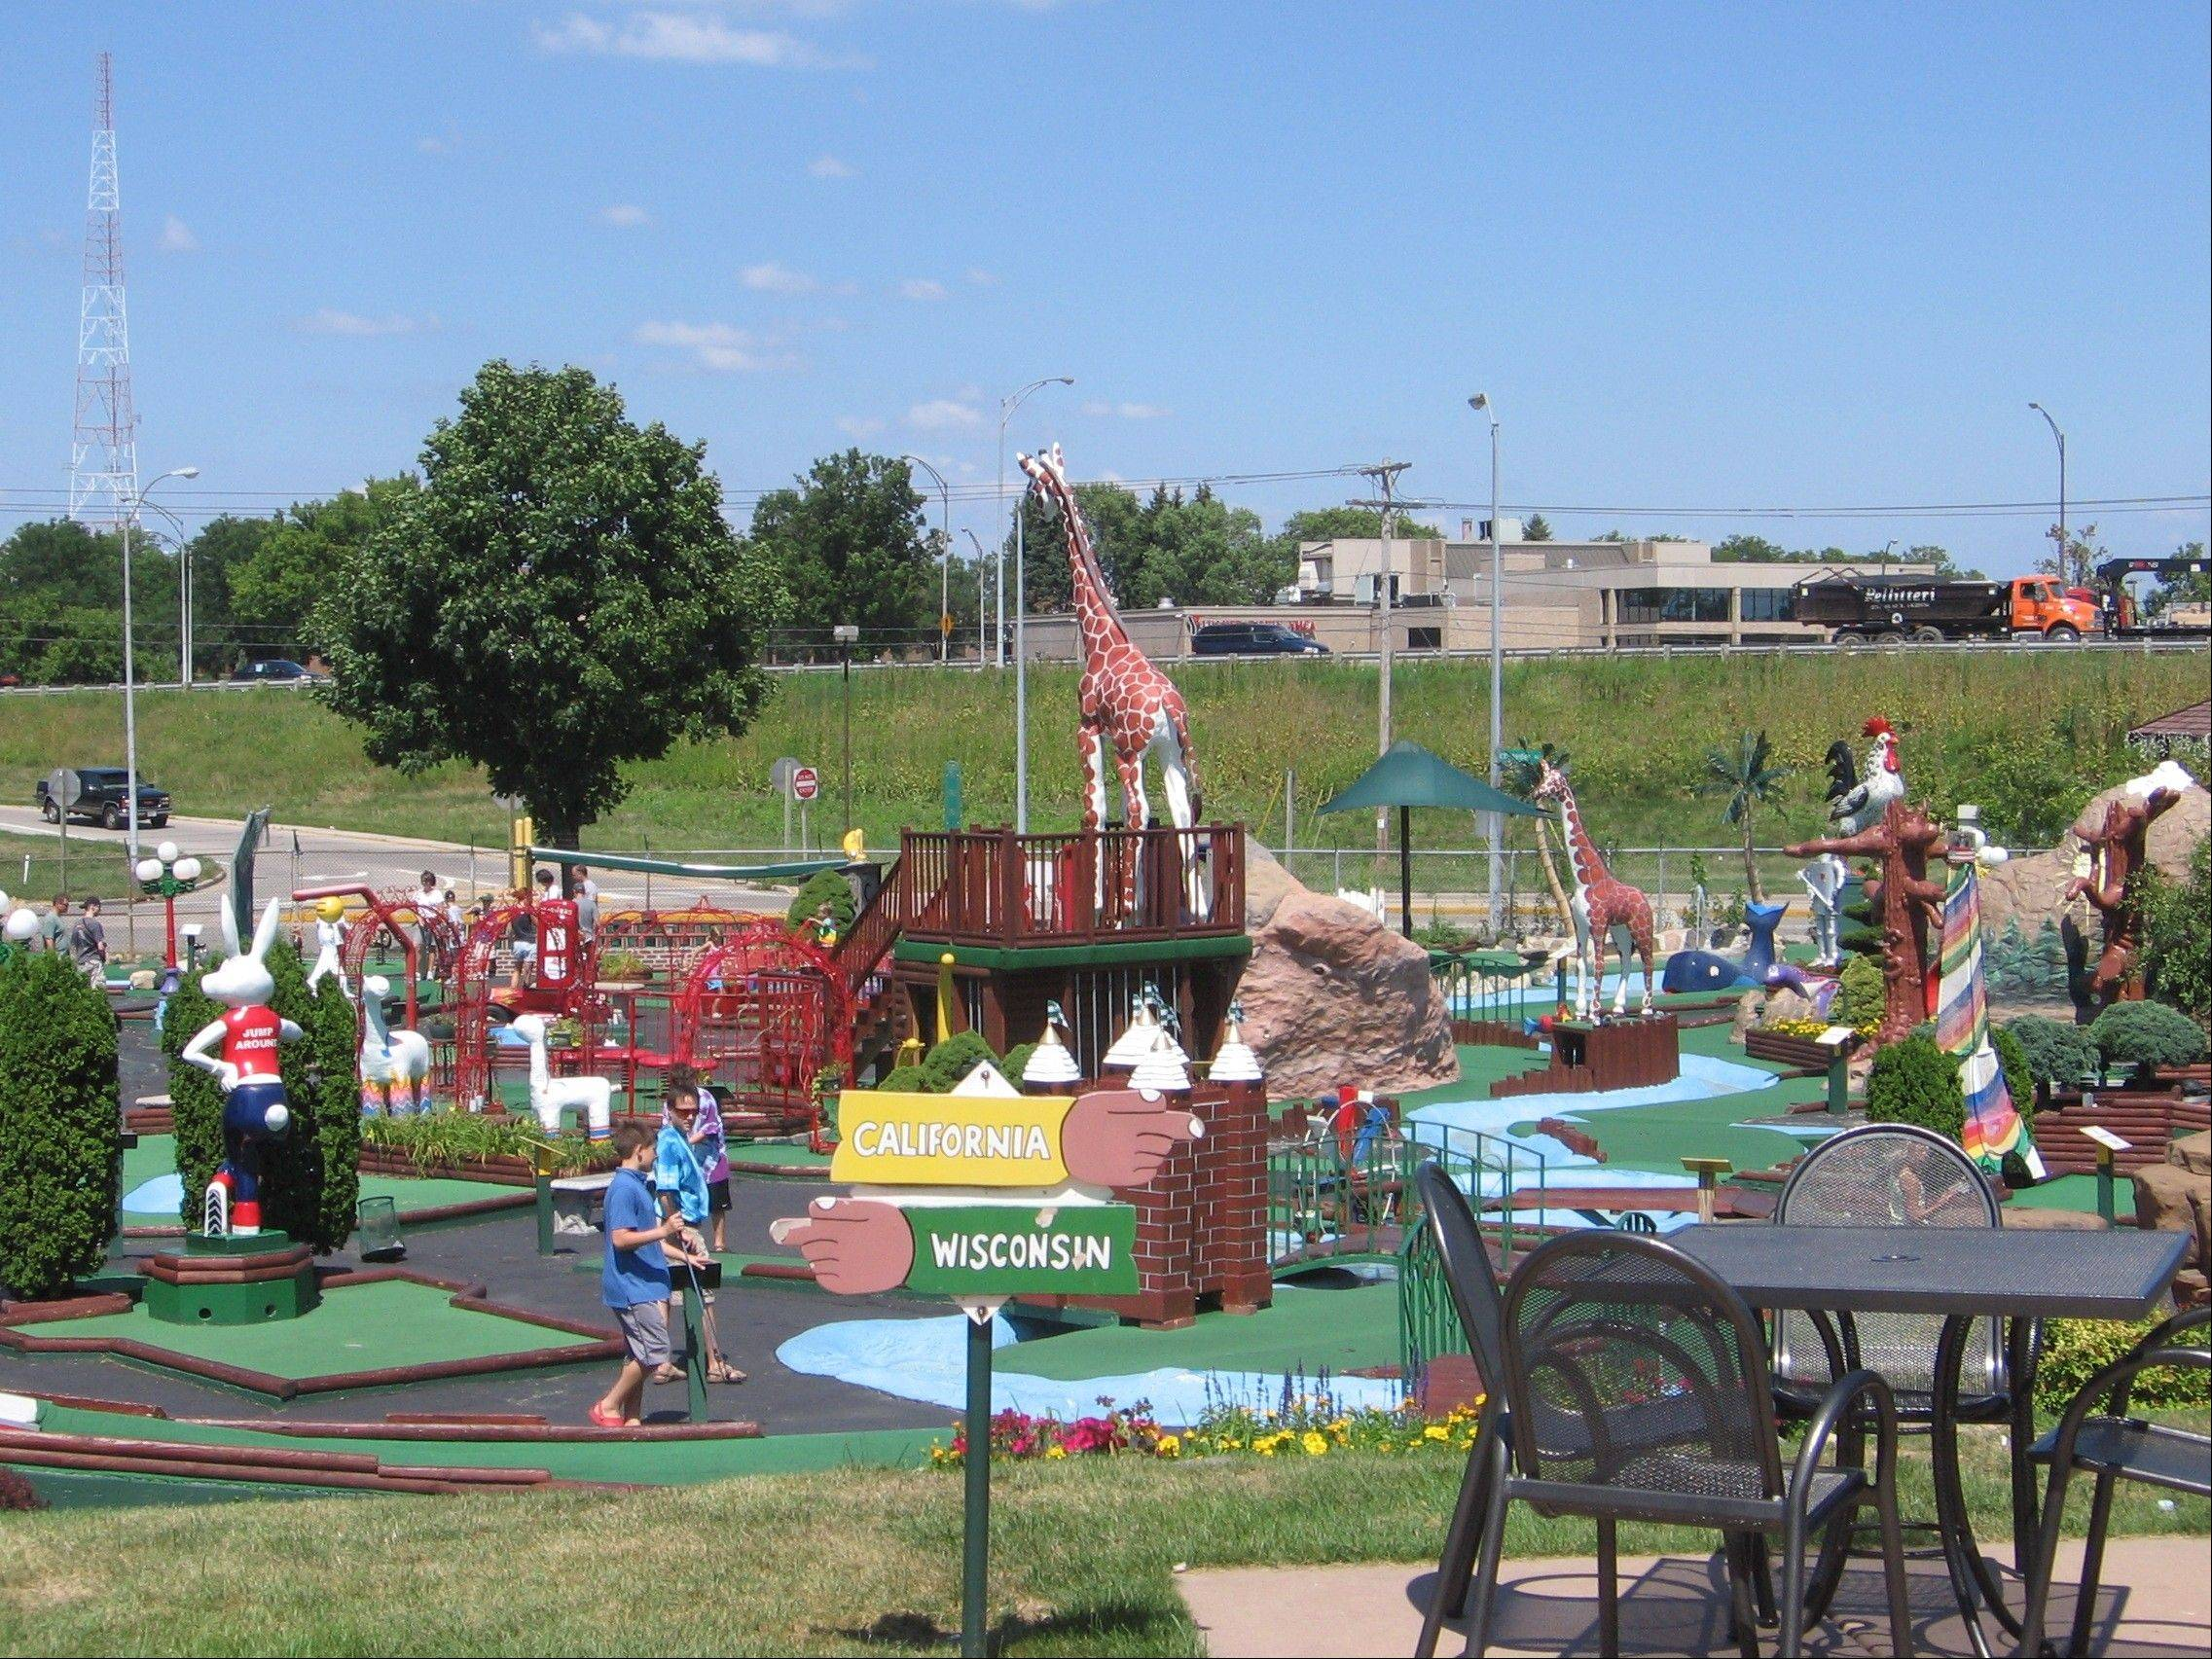 Vitense Golfland is known for massive, colorful outdoor mini-golf and driving ranges, but also features batting cages and an indoor mini-golf course with each hole depicting a different Madison site.